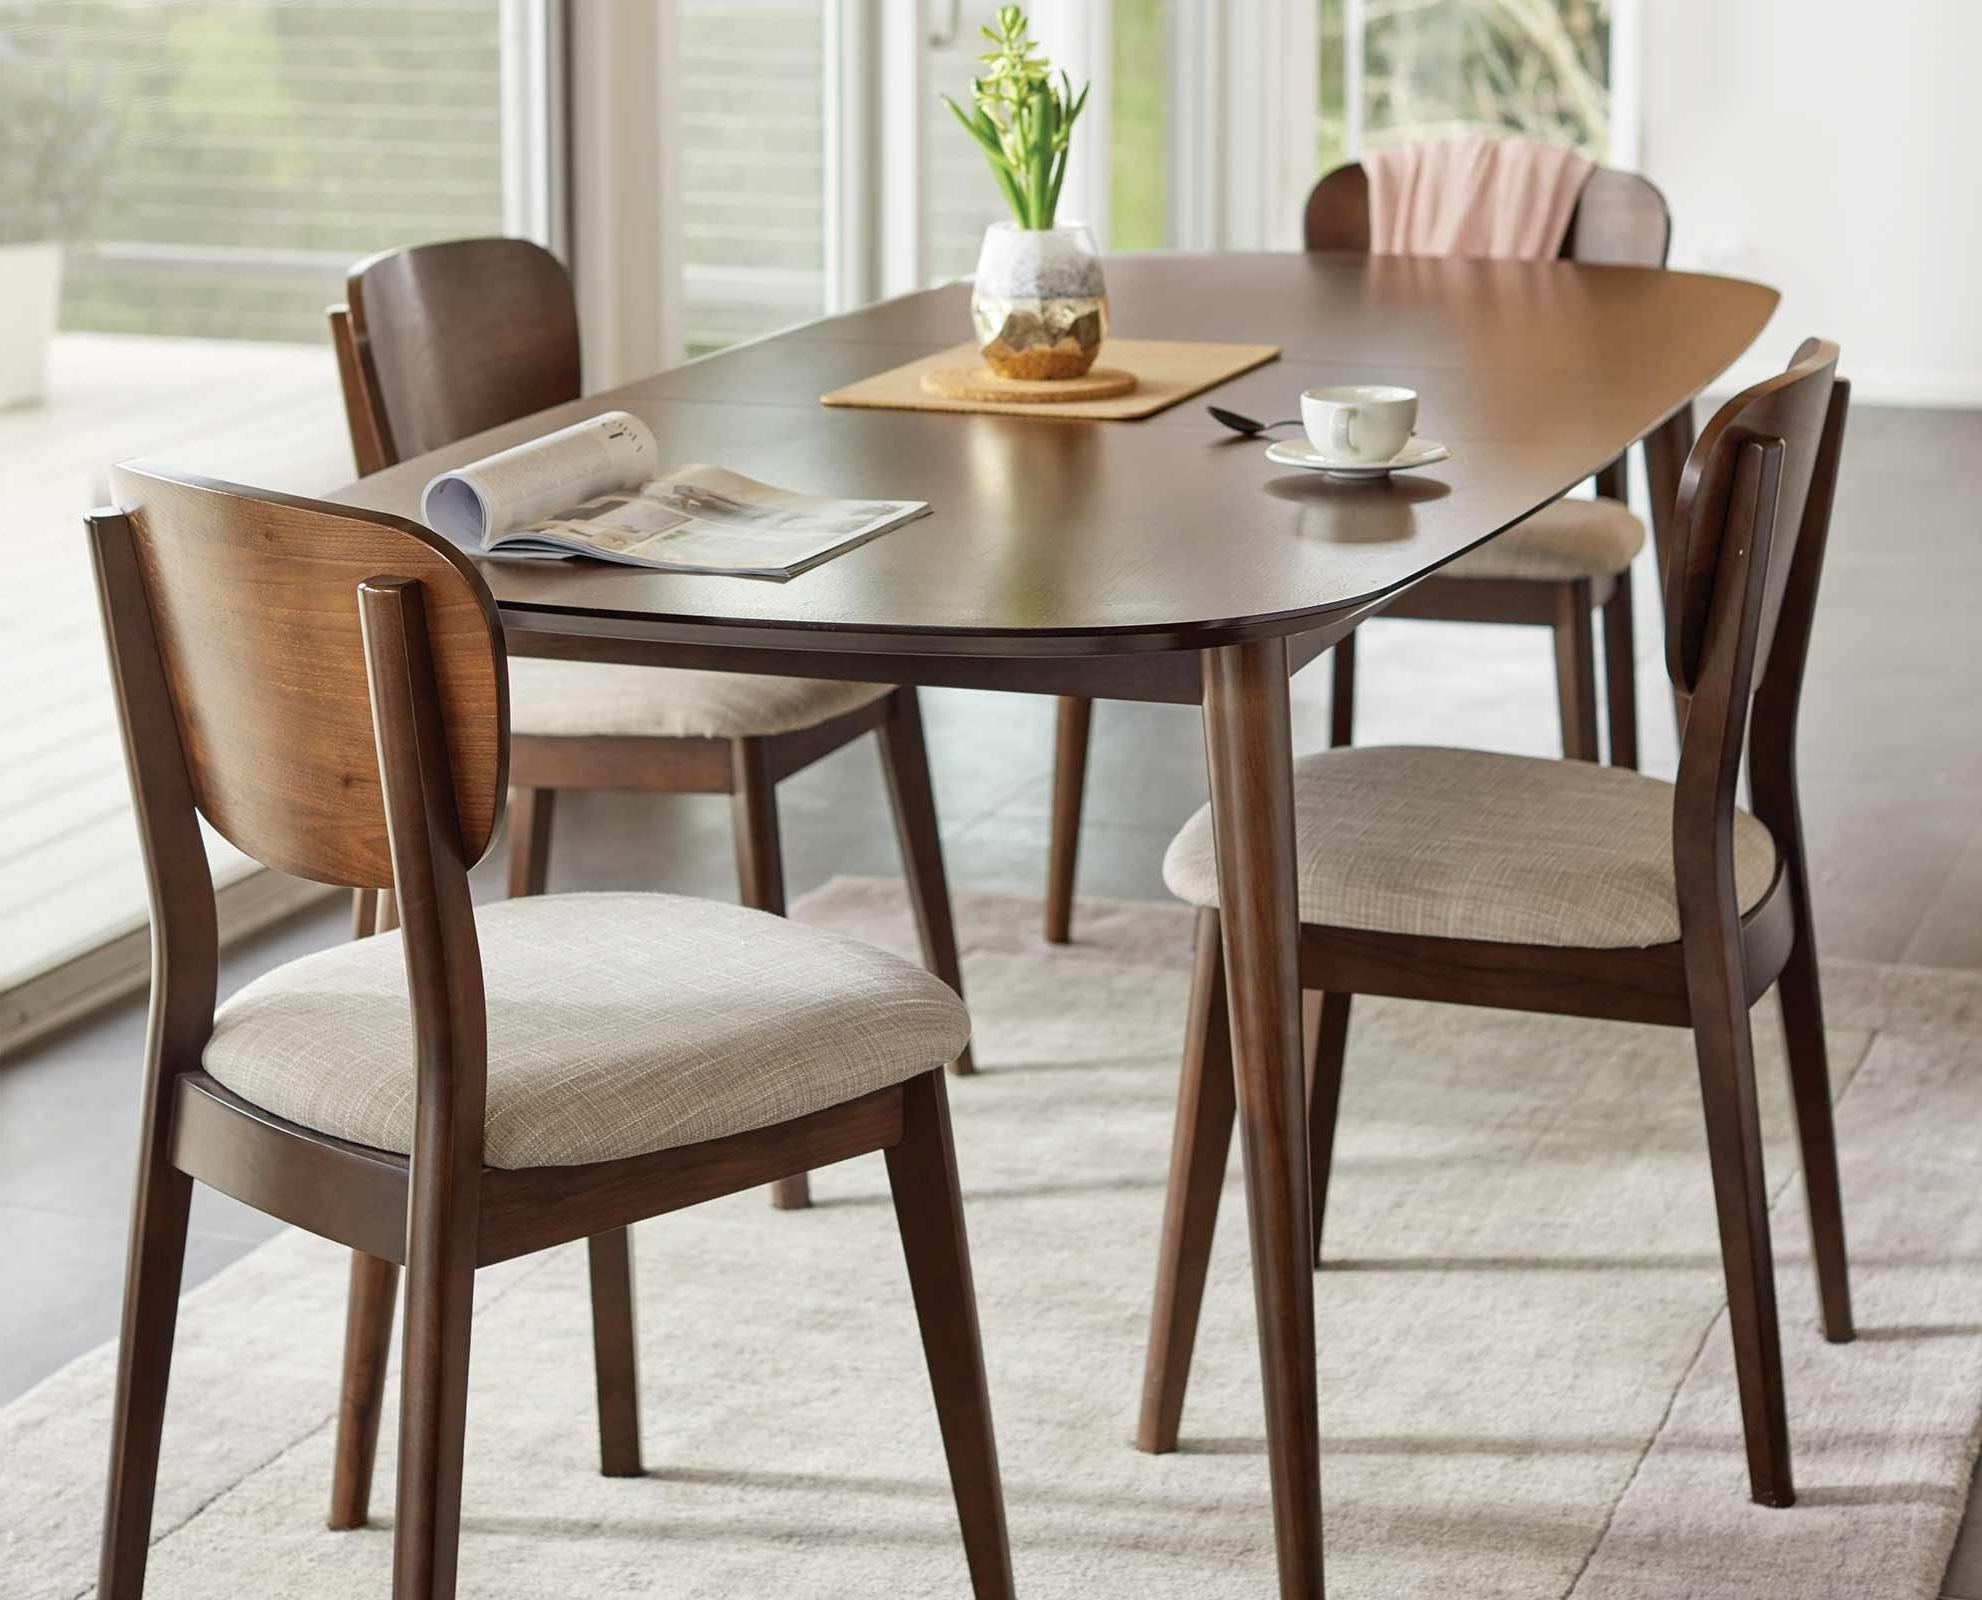 Jaxon Grey 5 Piece Round Extension Dining Sets With Wood Chairs within Popular Dinex Alfa Extension Dining Table New Jaxon Extension Rectangle